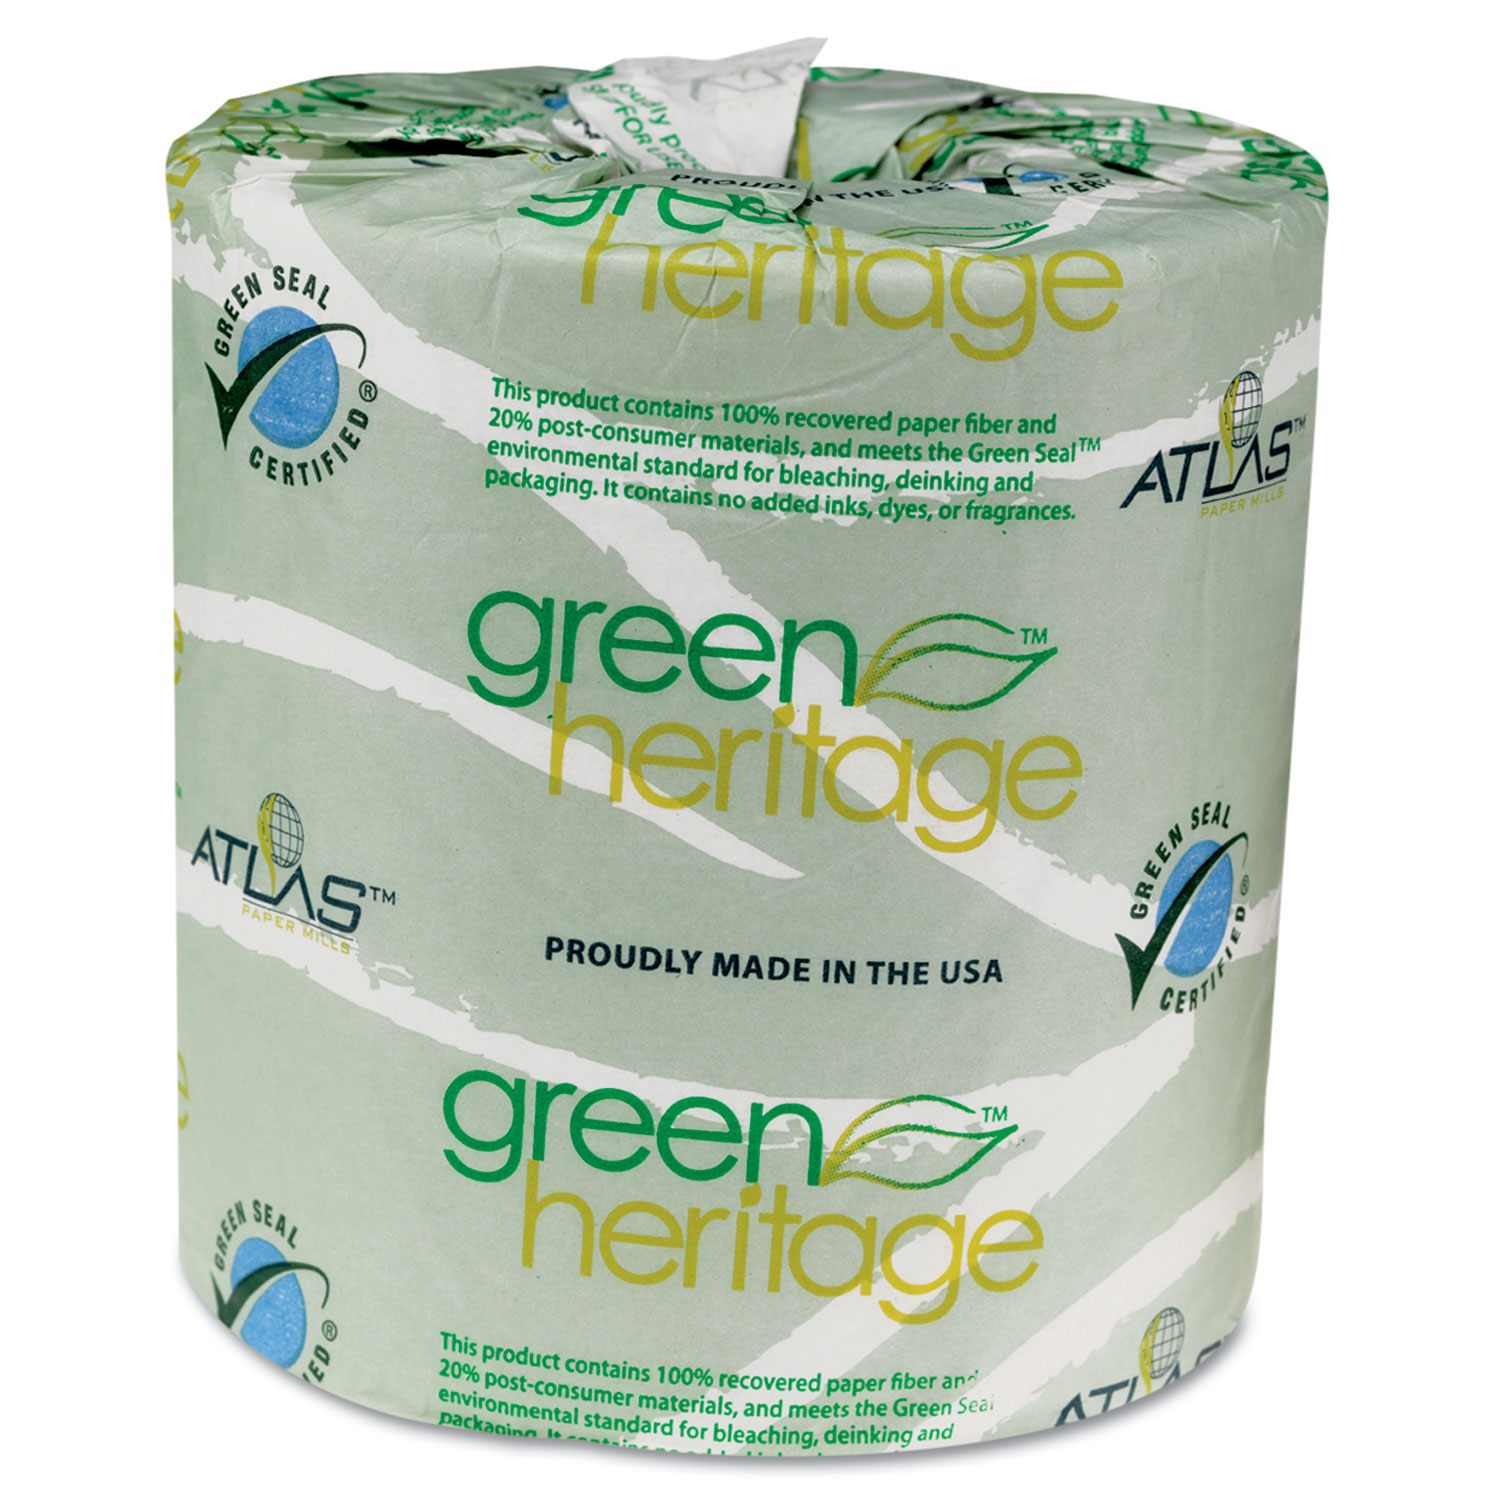 Green Heritage Toilet Tissue, 4.4 x 3.5 Sheets, 2-Ply, 500/Roll, 96 Rolls/CT